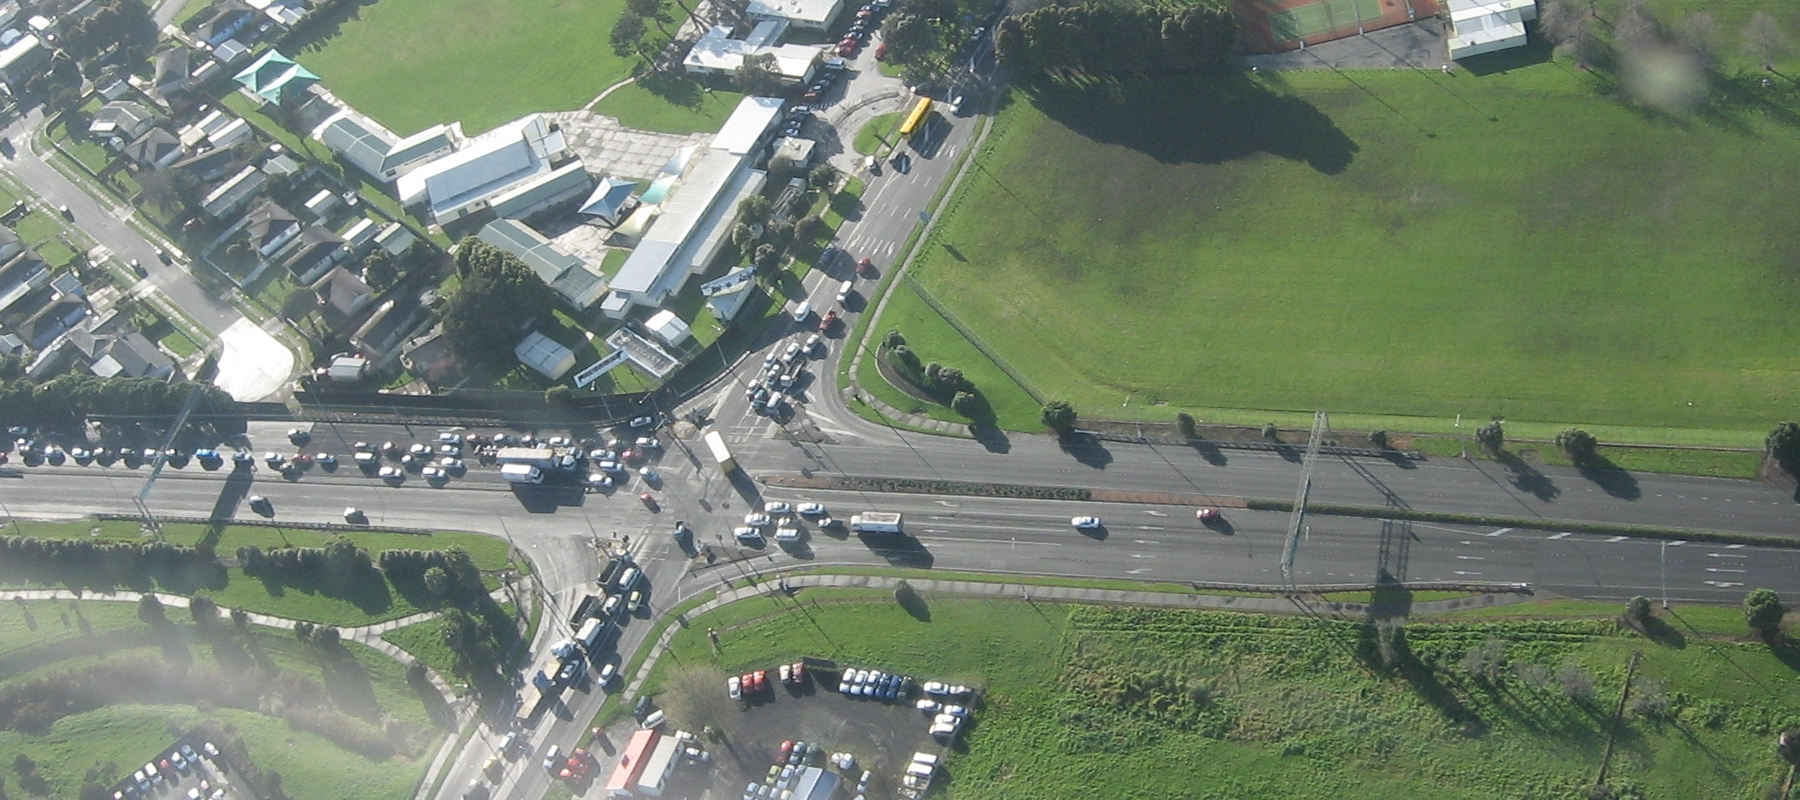 File:SH20A And Kirkbride Road Intersection.jpg - Wikimedia Commons